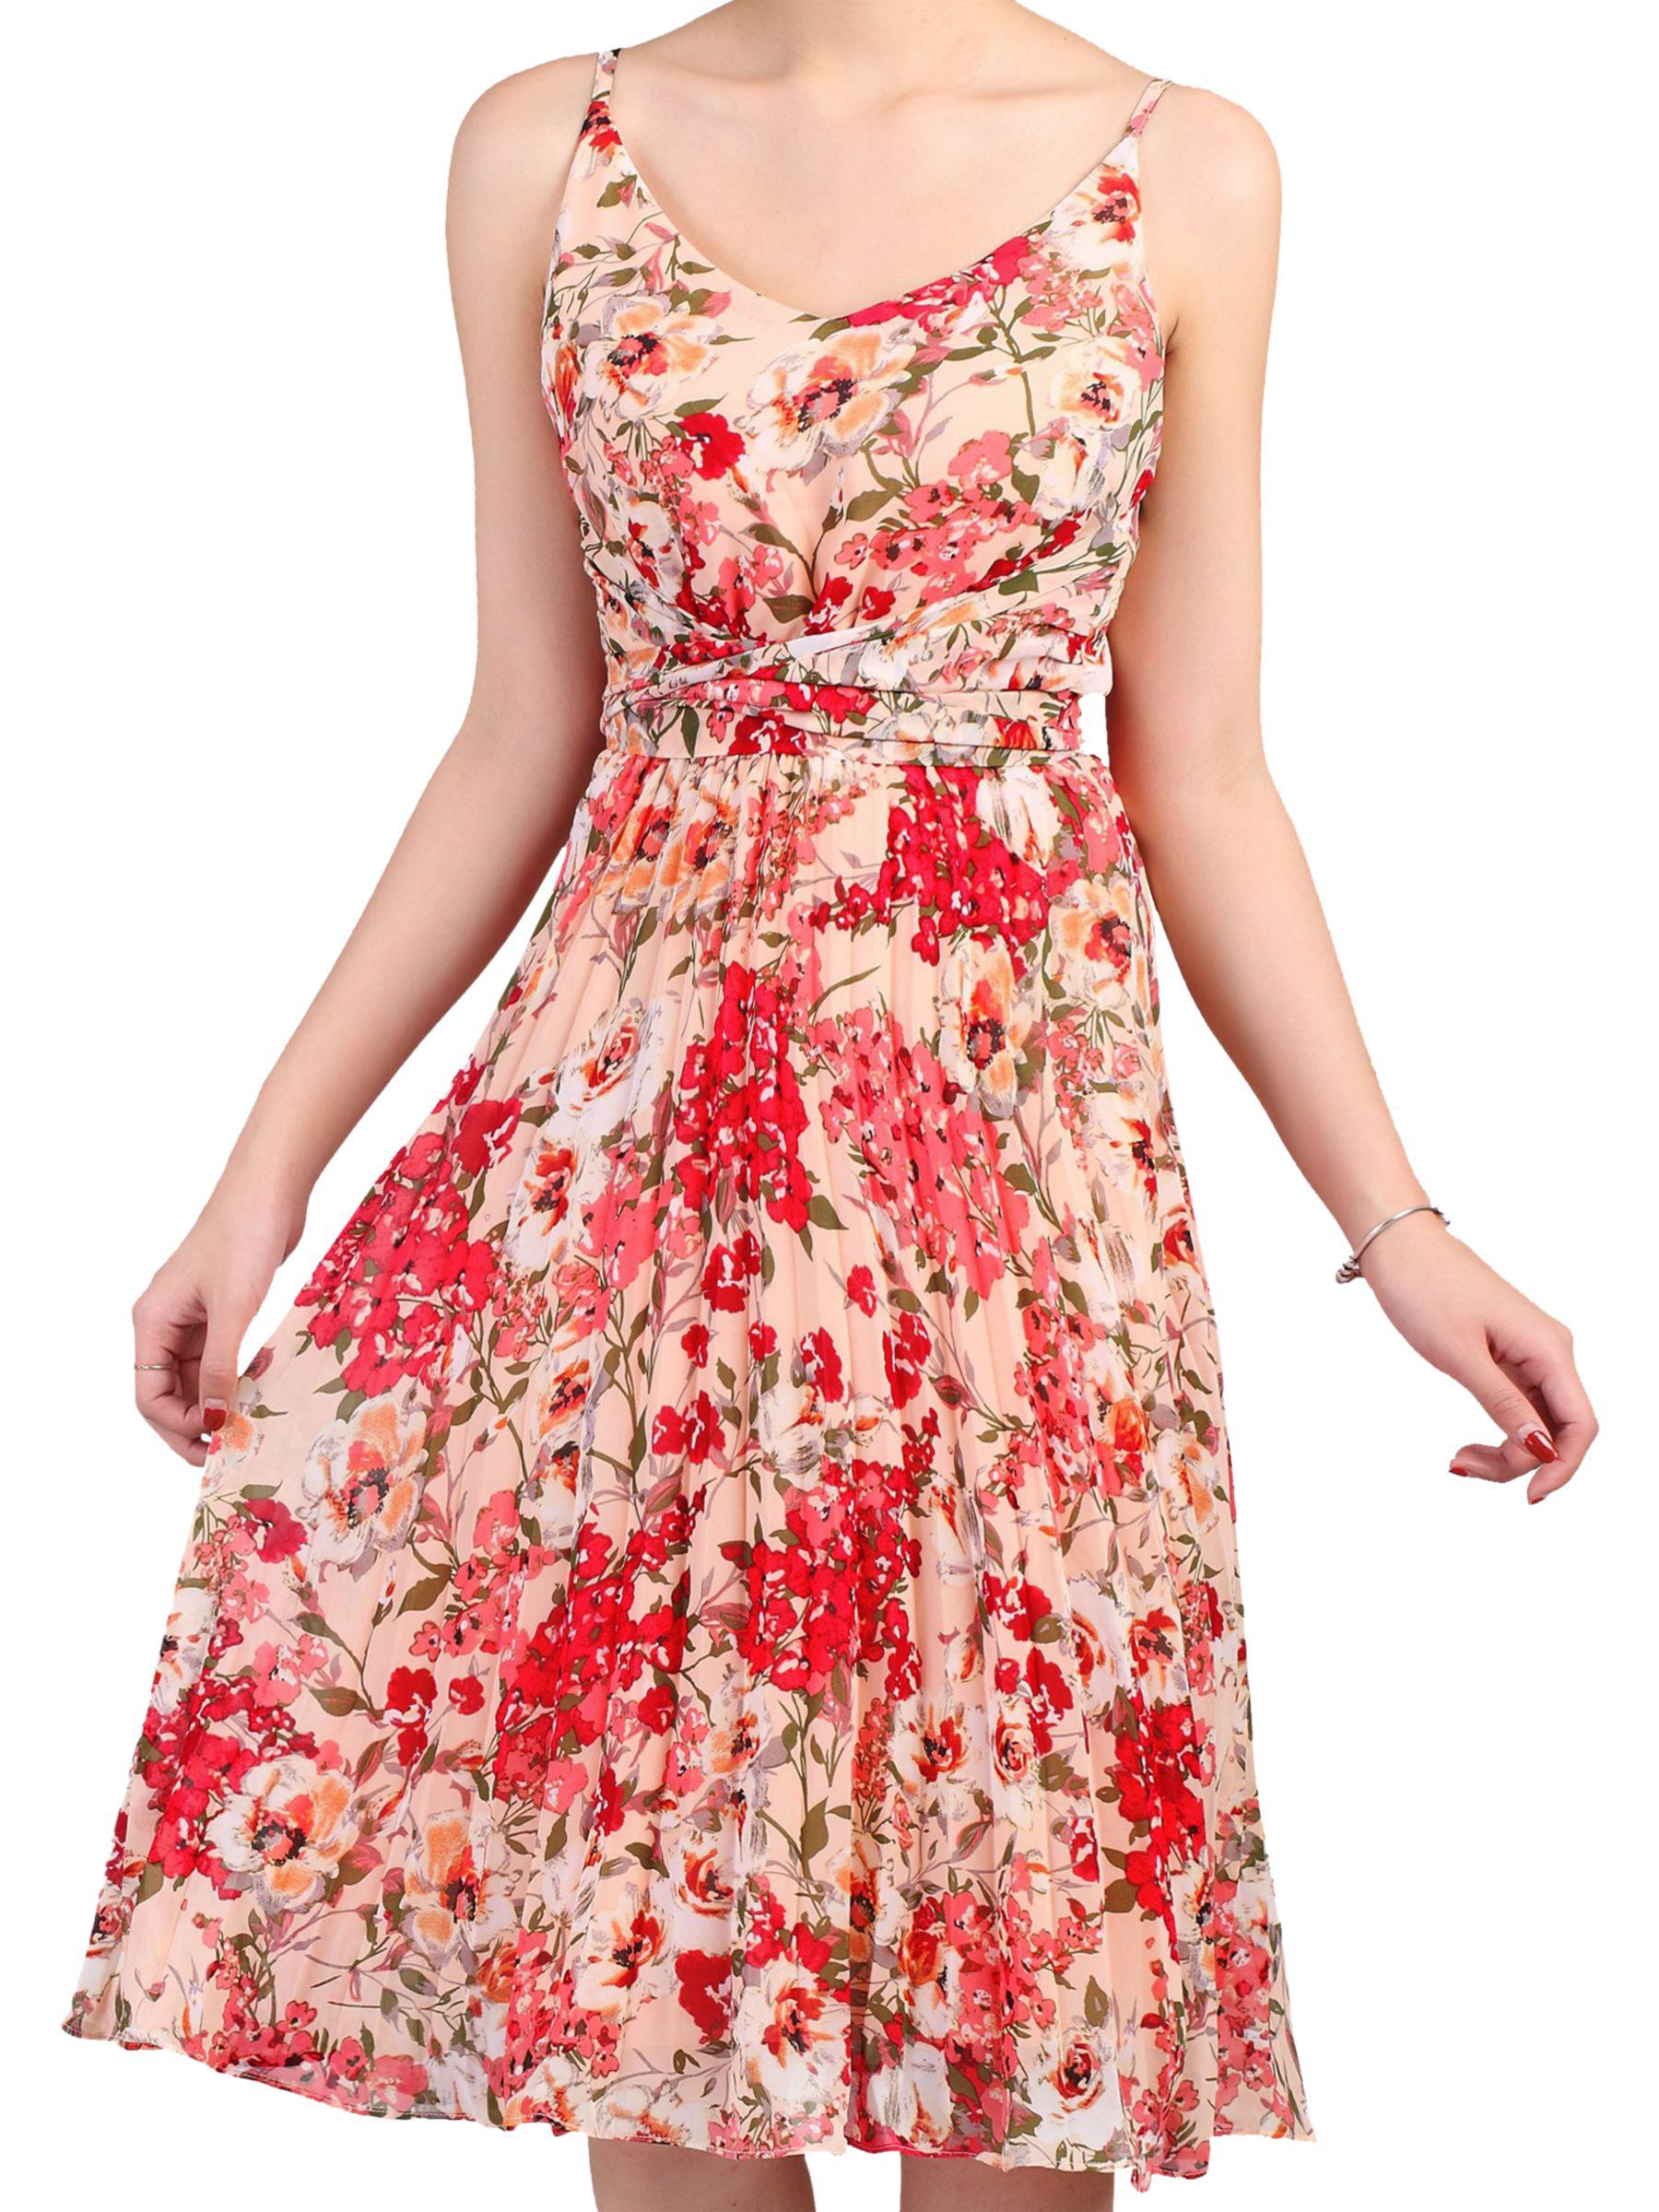 9c09fc5283c7 Jolie Moi Floral Pleated Dress in Pink - Lyst